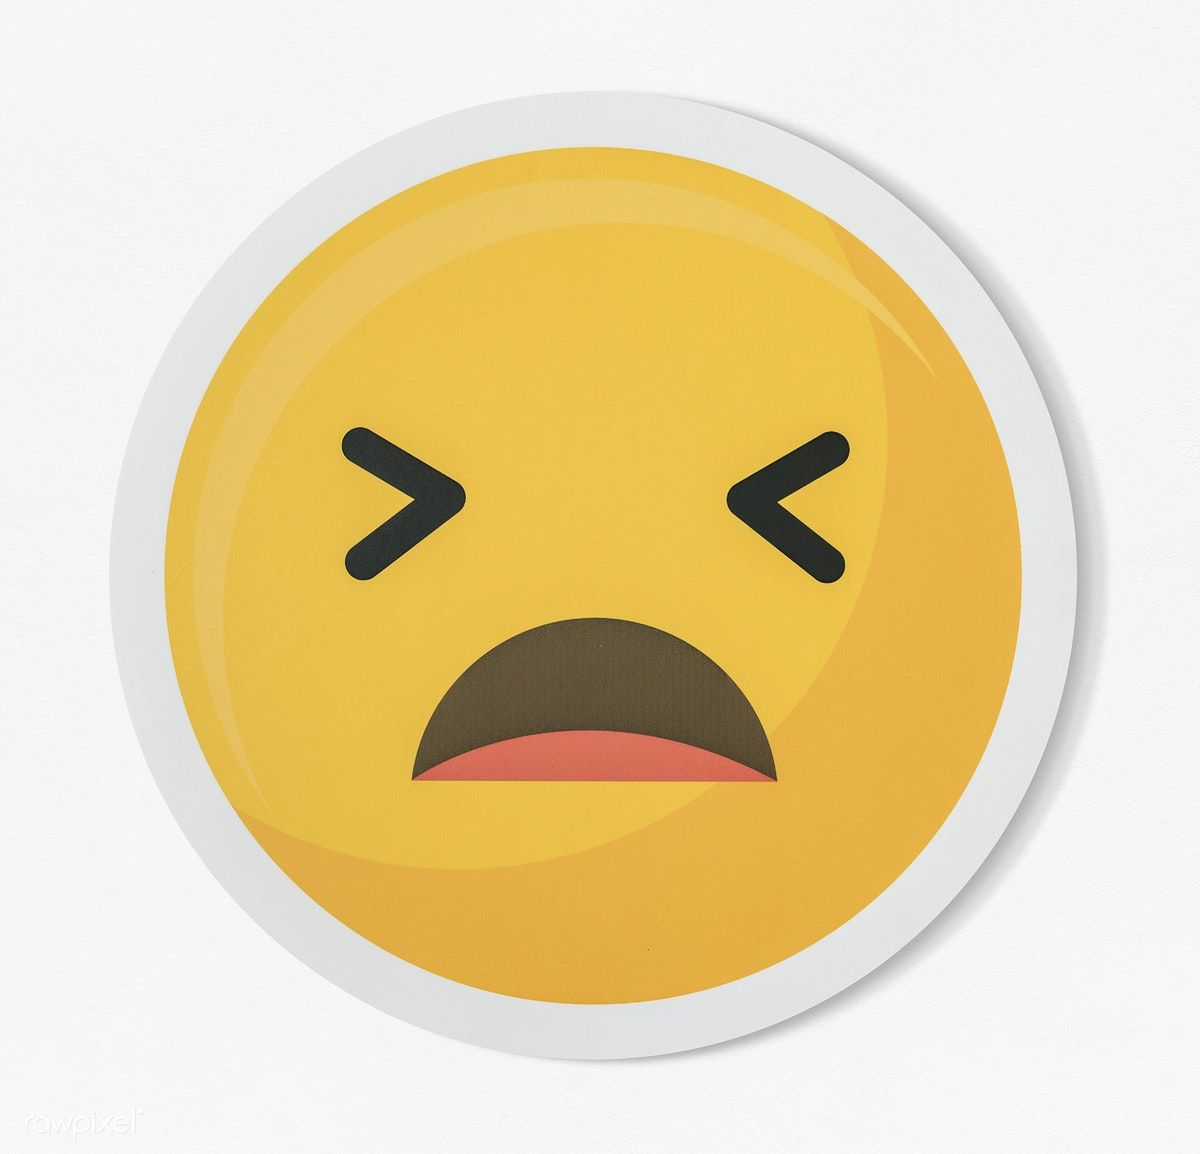 Download Premium Psd Of Disappointed Emoticon Emoji Face Icon 402404 Face Icon Emoji Faces Emoticon